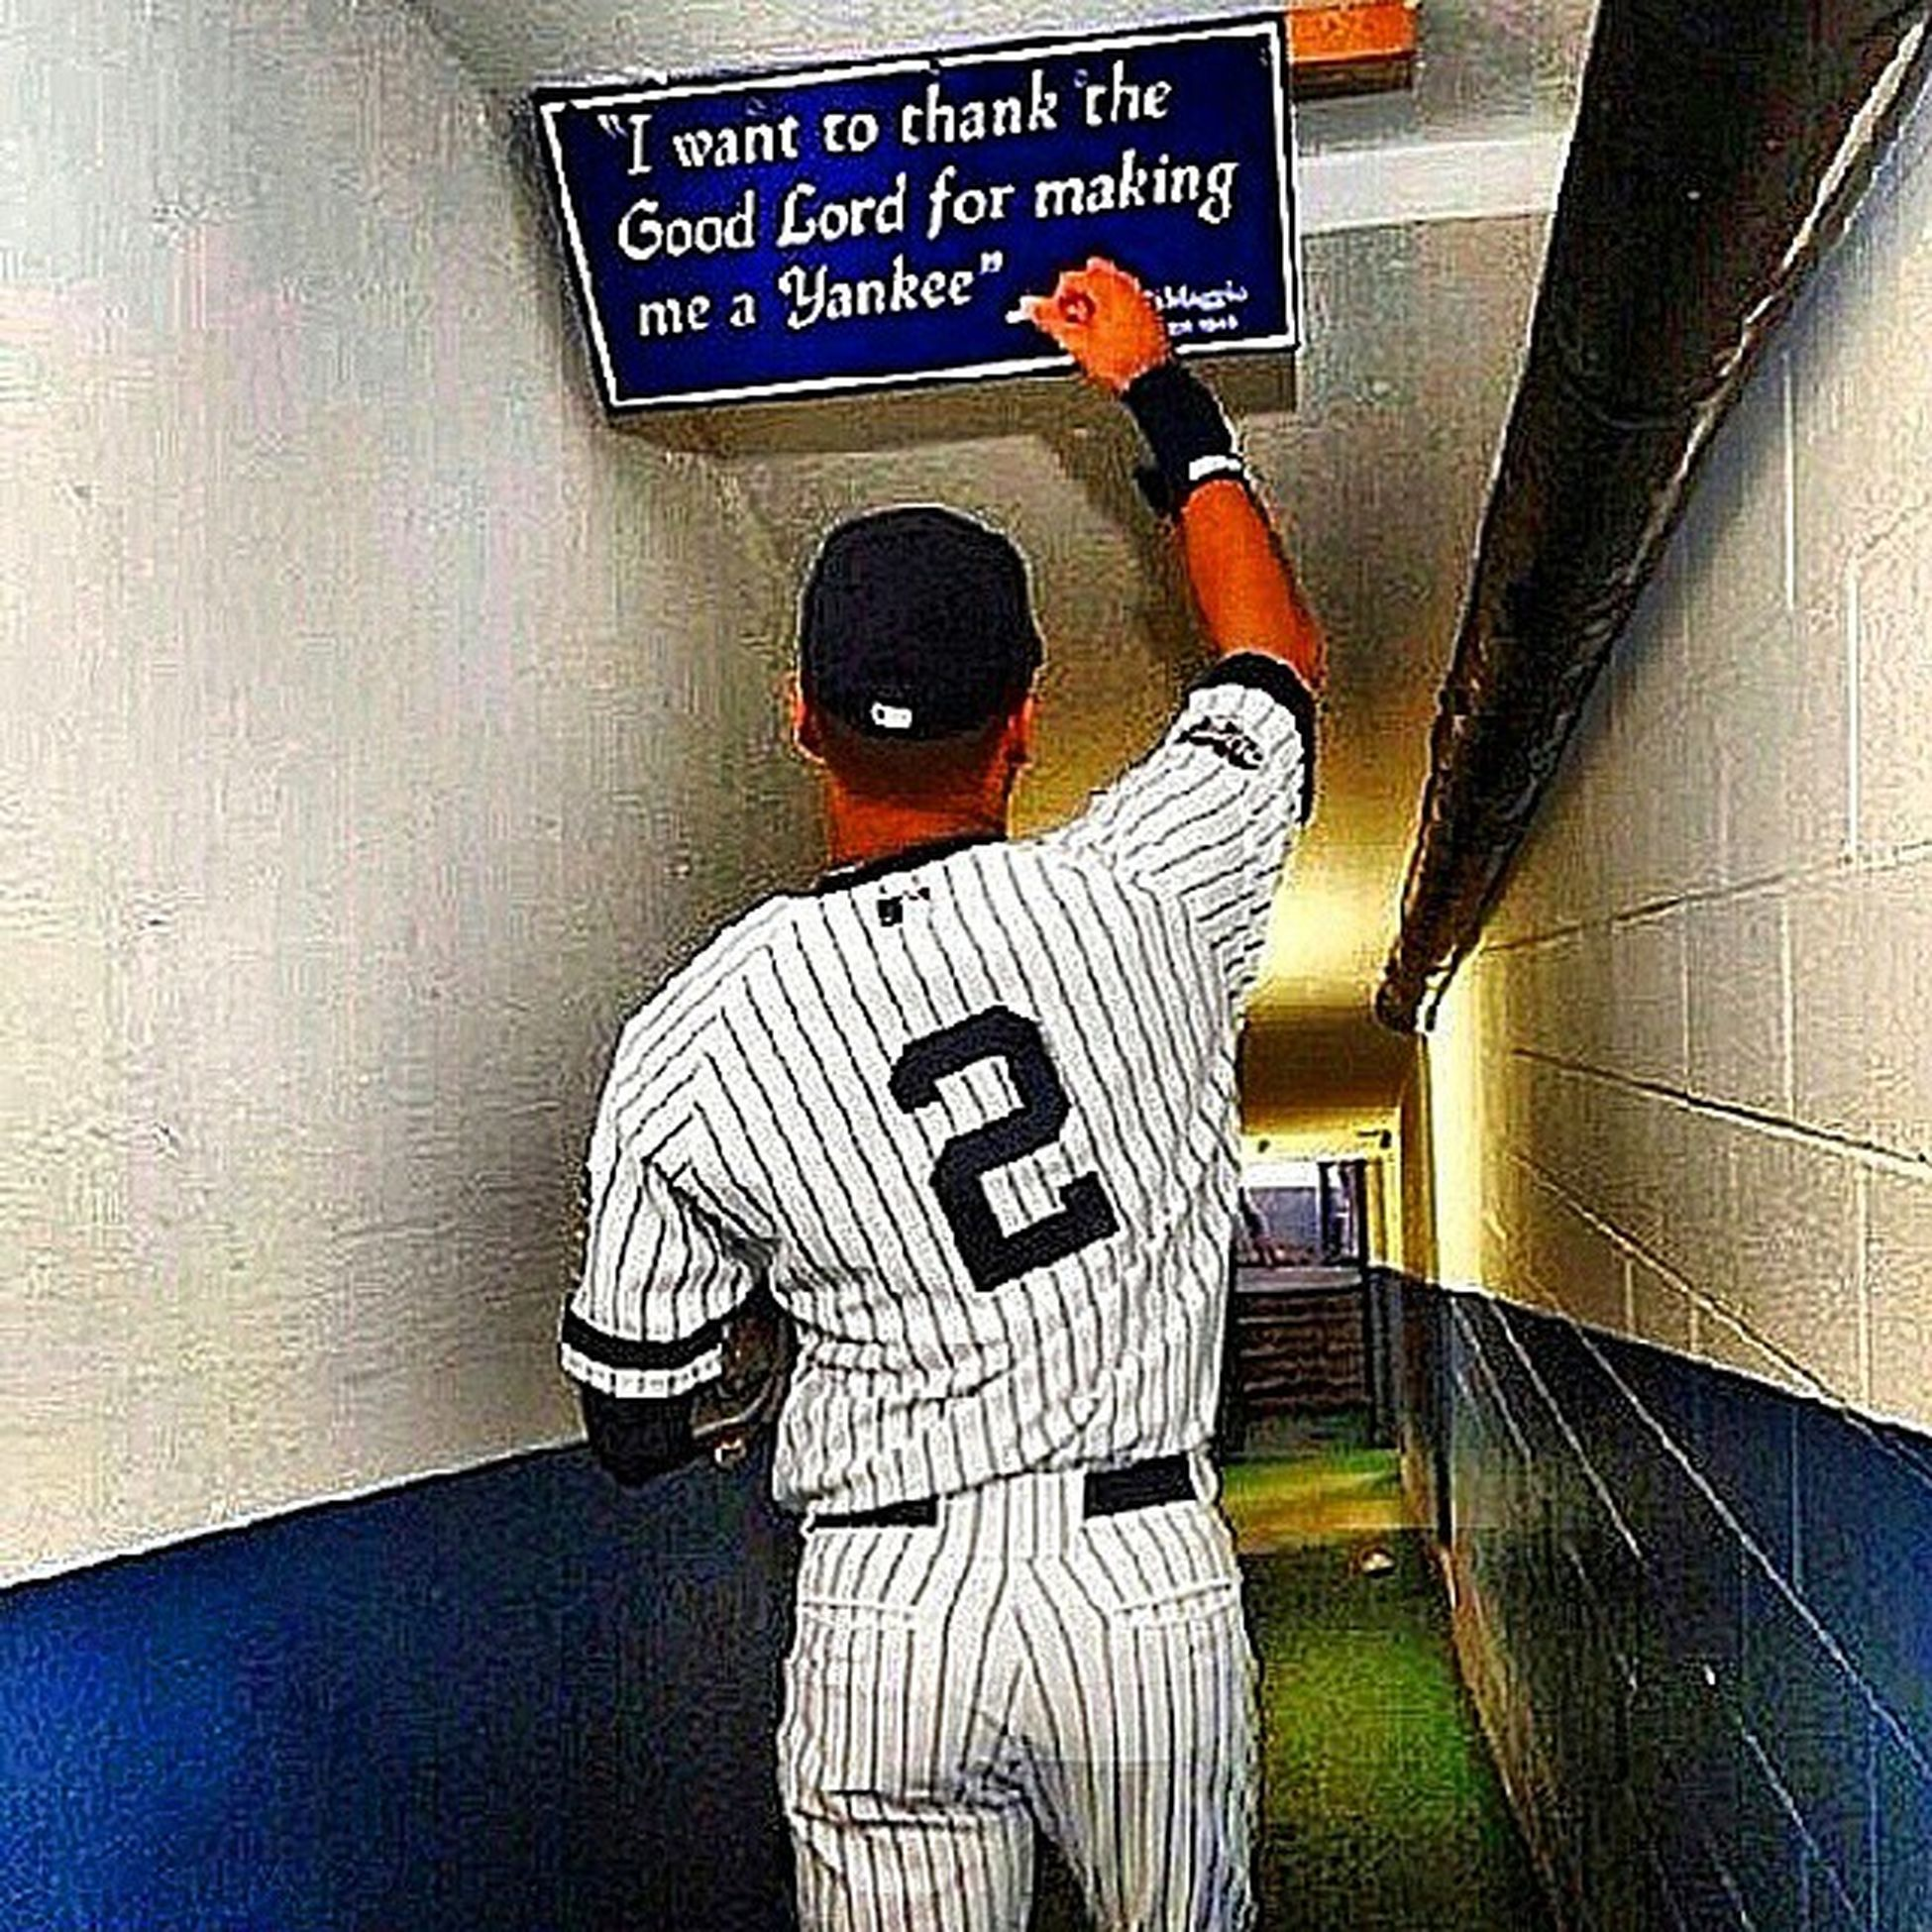 Tonight's DaCaptain 's Last Game Playing In NYC Je2er YankeeForLife ~ Thanks For Always Bringin' Your A-Game To Each & Every Time I Spent My Dollars To Witness You Hustle. YankeeStadium BX BronxBombers